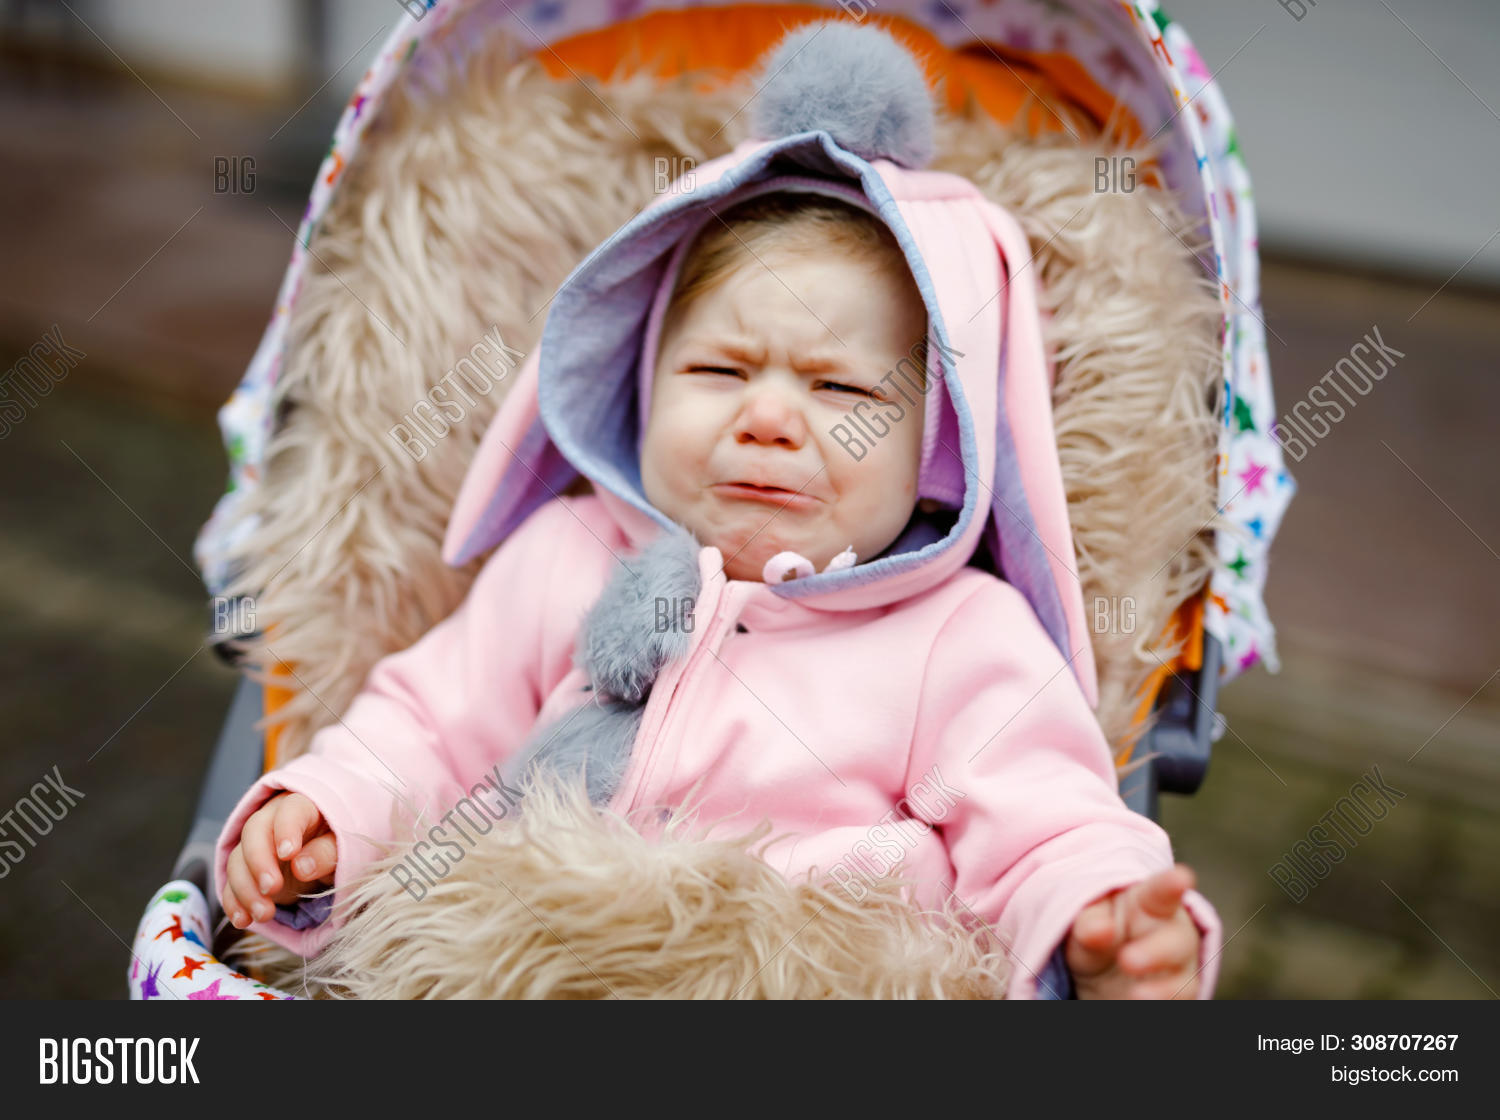 autumn,baby,bad,blonde,boy,bunny,care,carriage,child,childhood,clothes,coat,colorful,copyspace,crying,cute,day,ear,exhausted,family,fashion,girl,healthy,hysterical,joy,kid,lifestyle,little,looking,love,nature,outdoor,people,pink,pram,sad,season,seasonal,sitting,spring,stars,stroll,stroller,stylish,summer,tired,toddler,wear